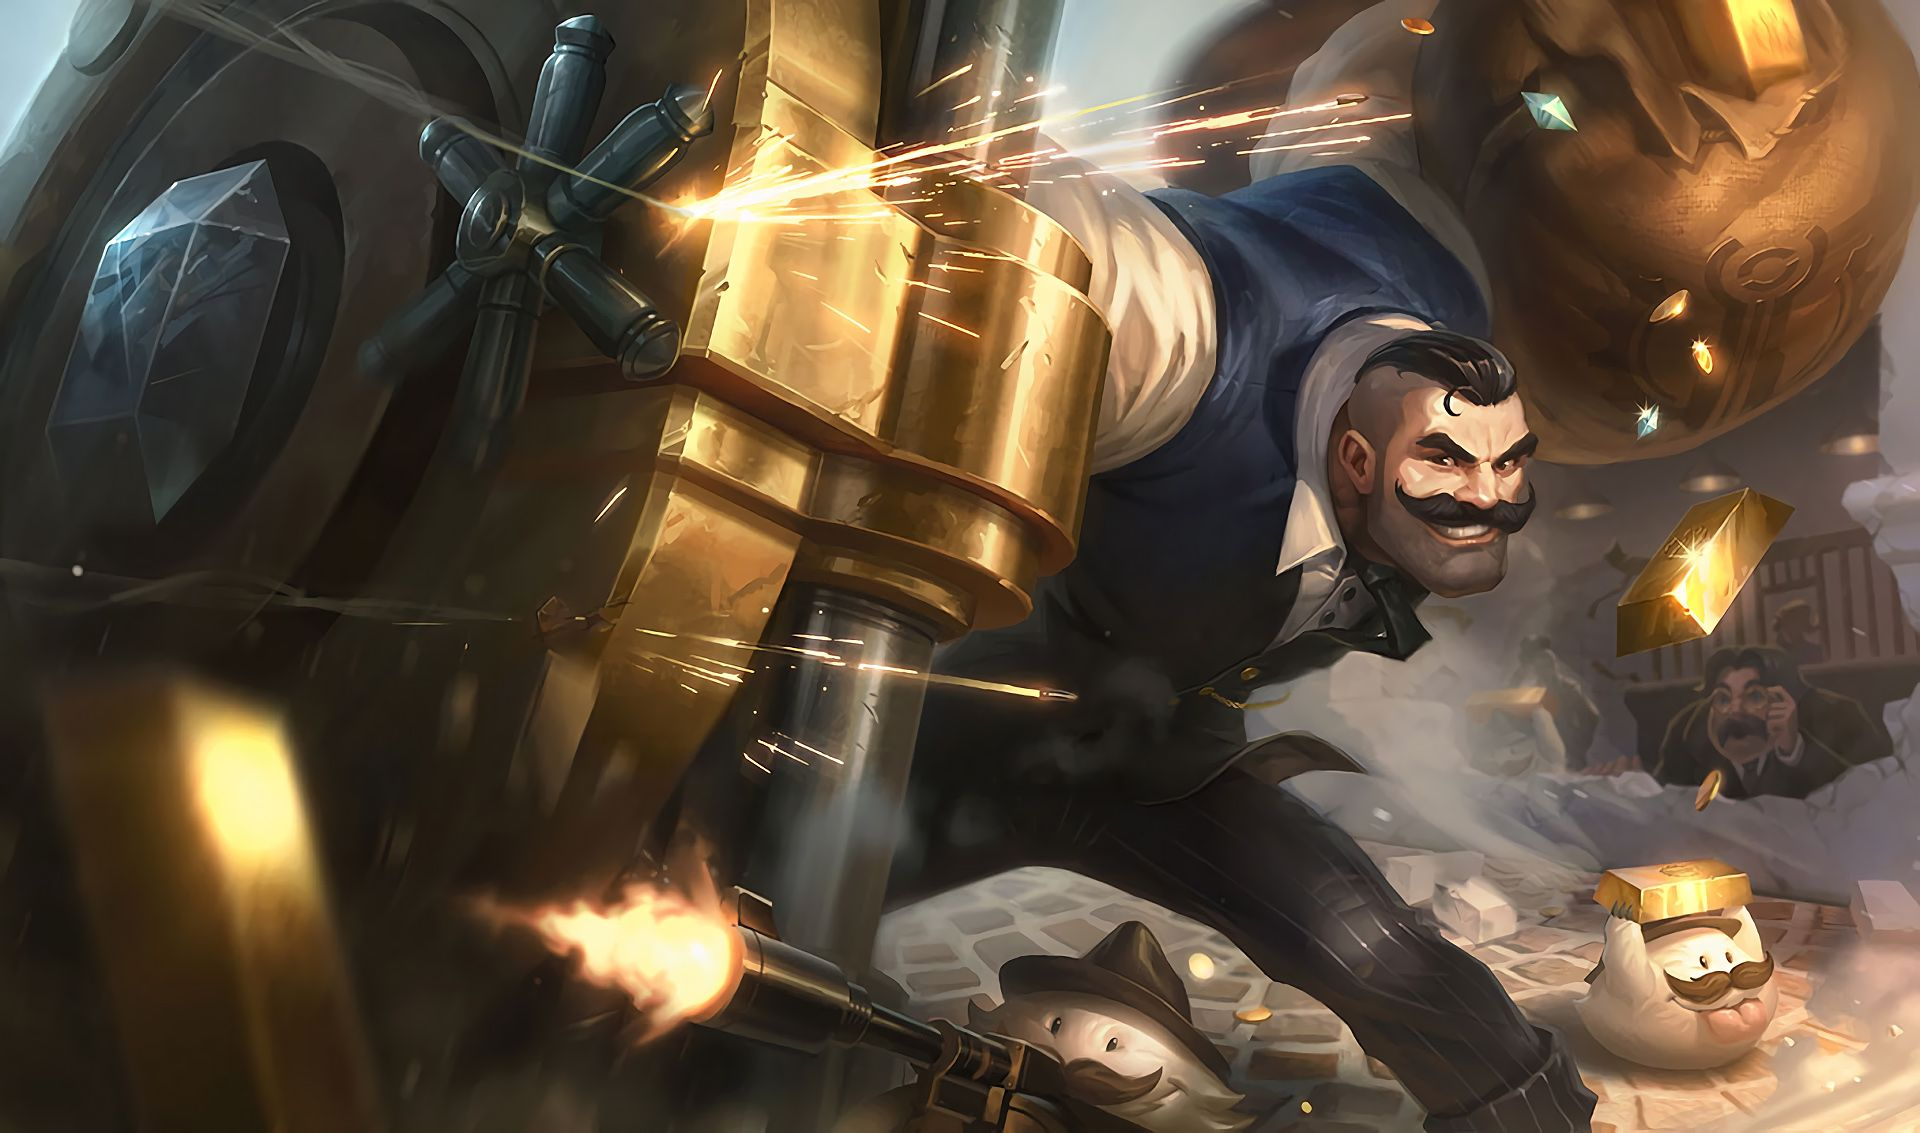 Mafia Braum Hd Wallpaper Background Official Art Artwork League Of Legends Lol Jpg 1920 1133 Braum S League Of Legends Champions League Of Legends